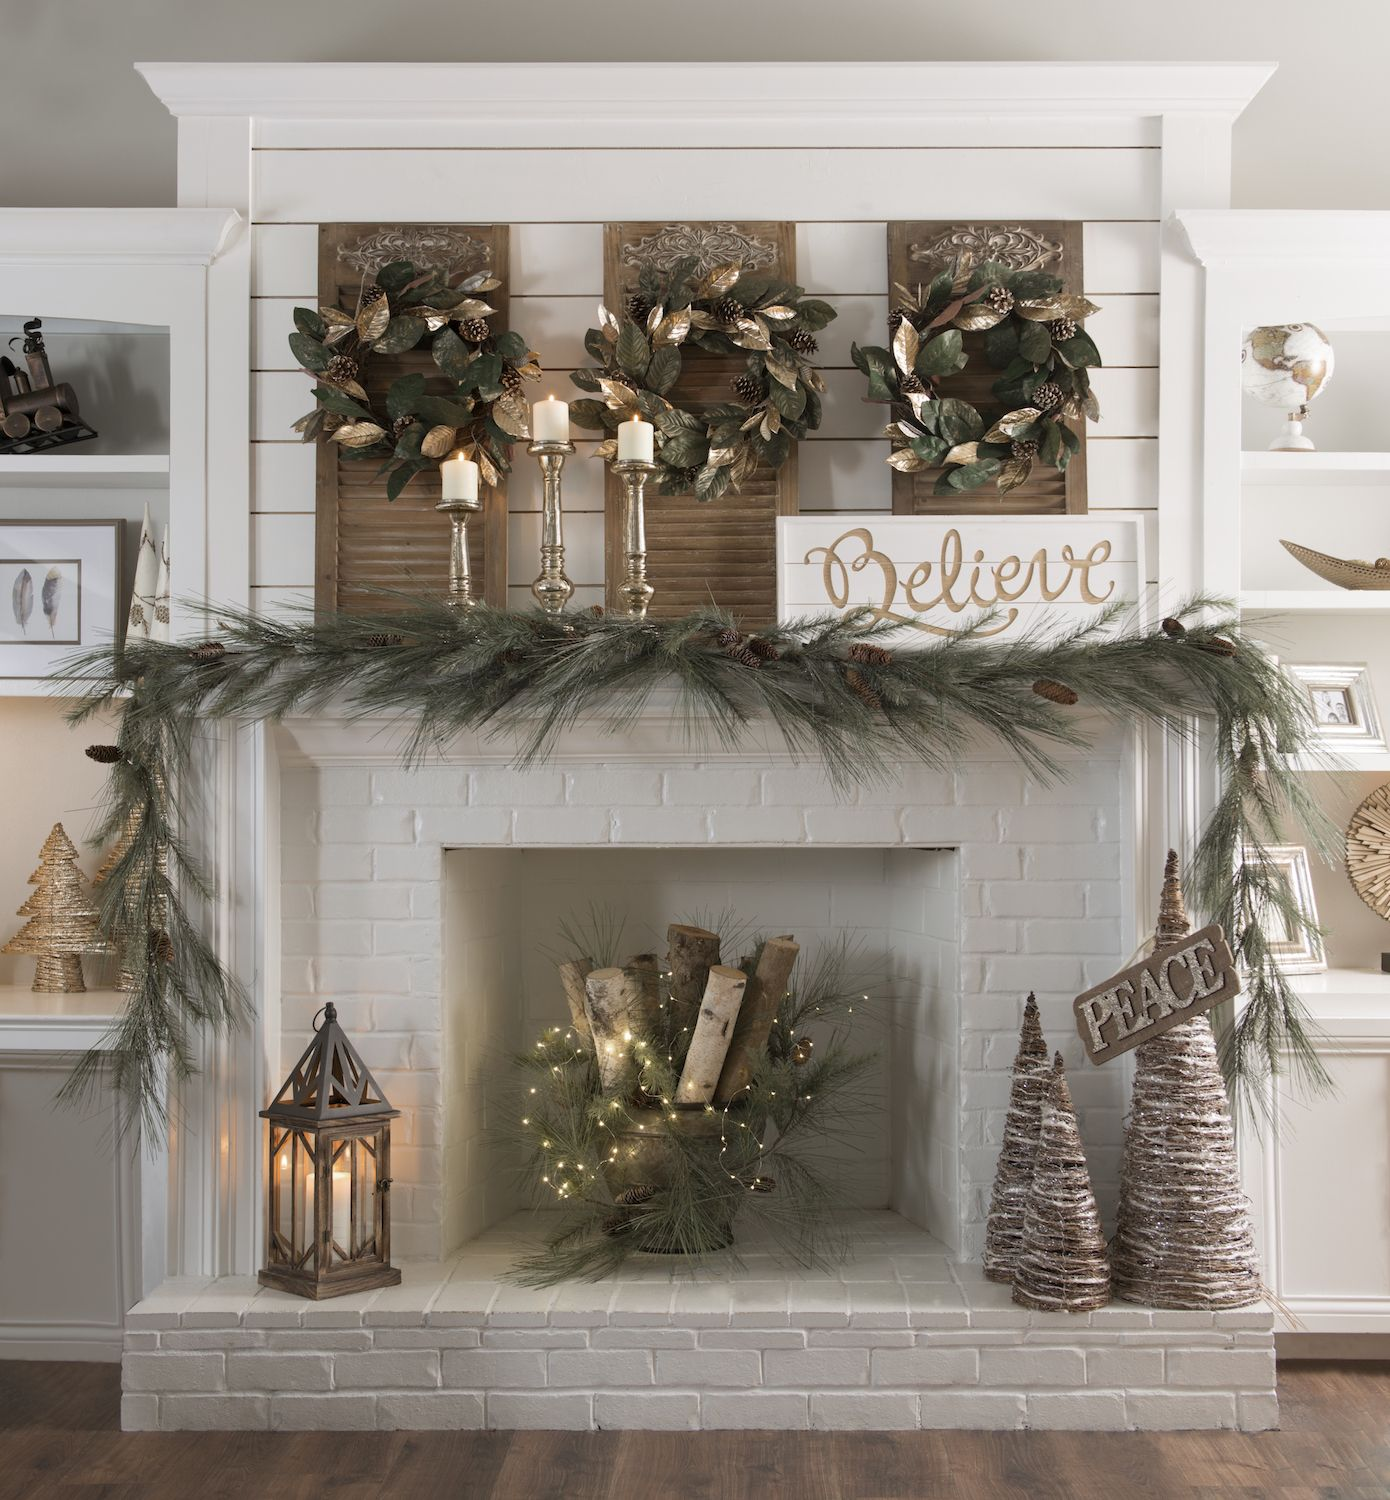 Kirklands Christmas Decorations: Find All Of The Decorating Resources You Need To Make Your